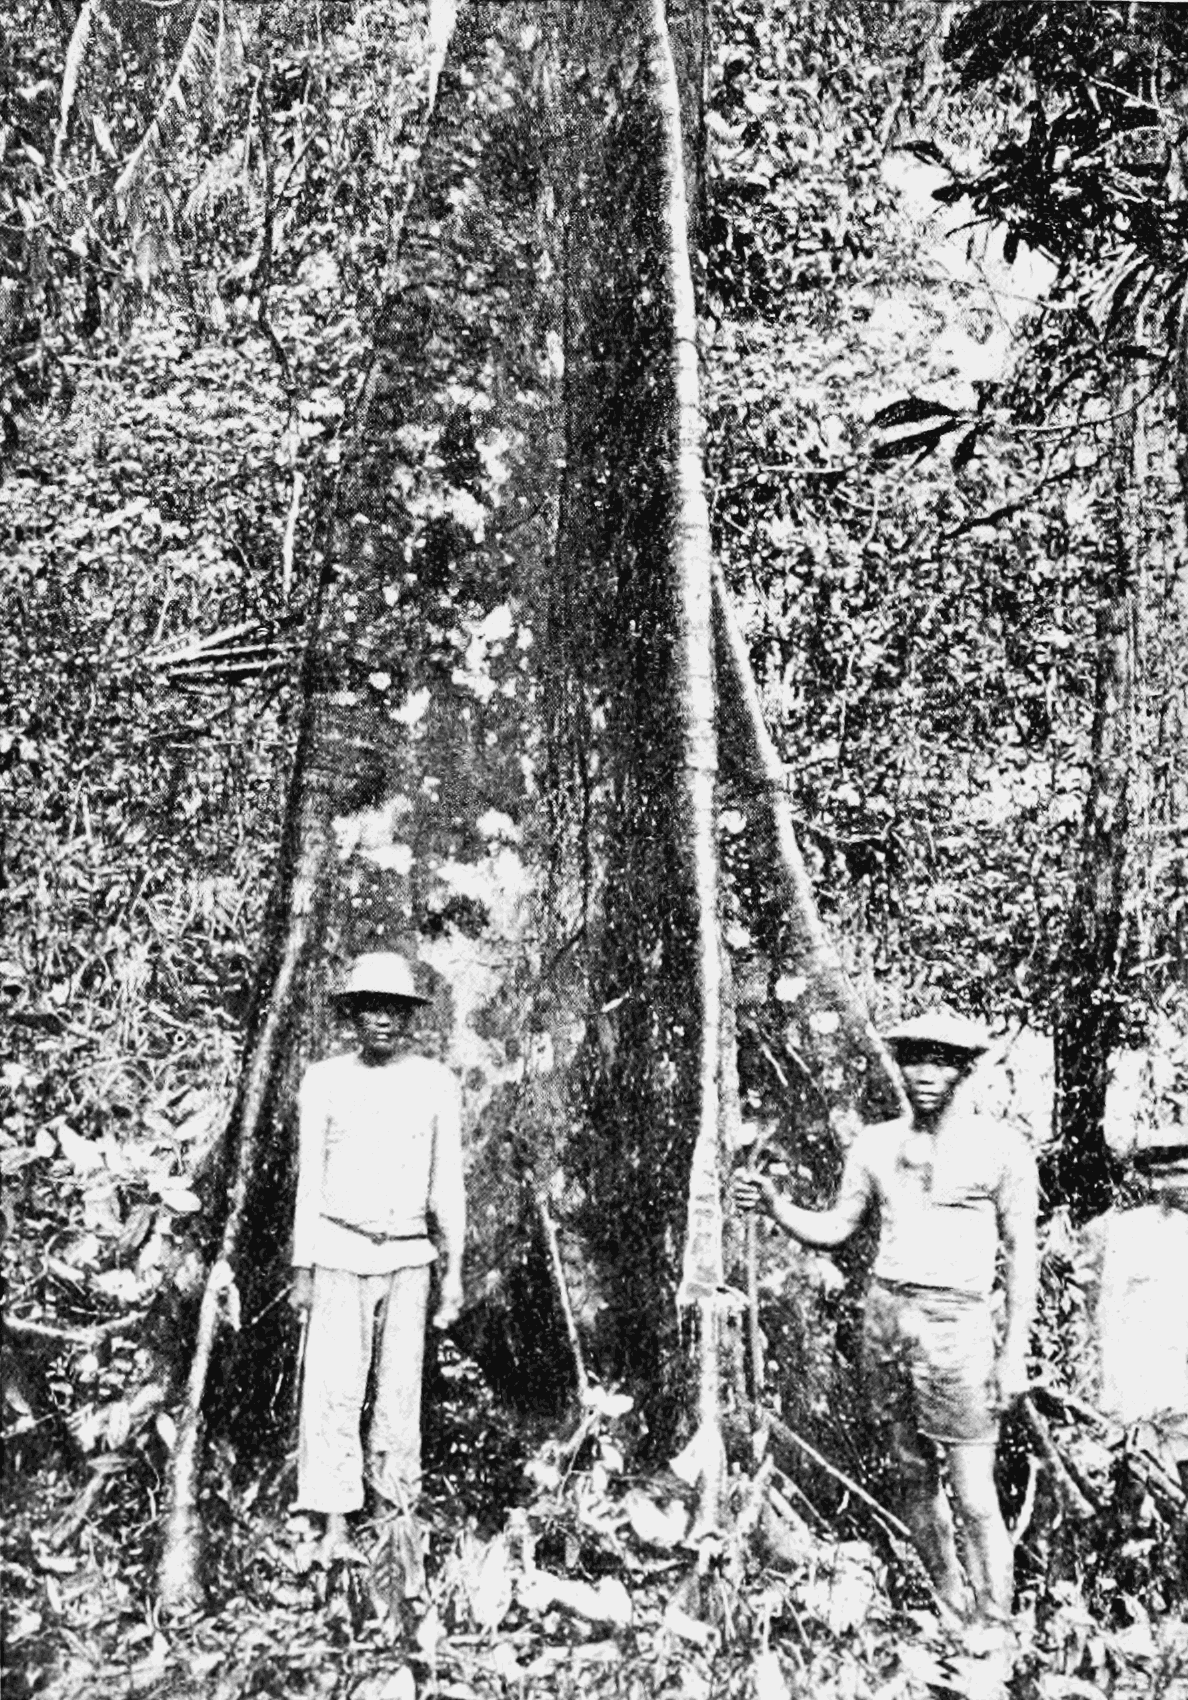 PSM V65 D480 Gutta percha tree in mindanao.png